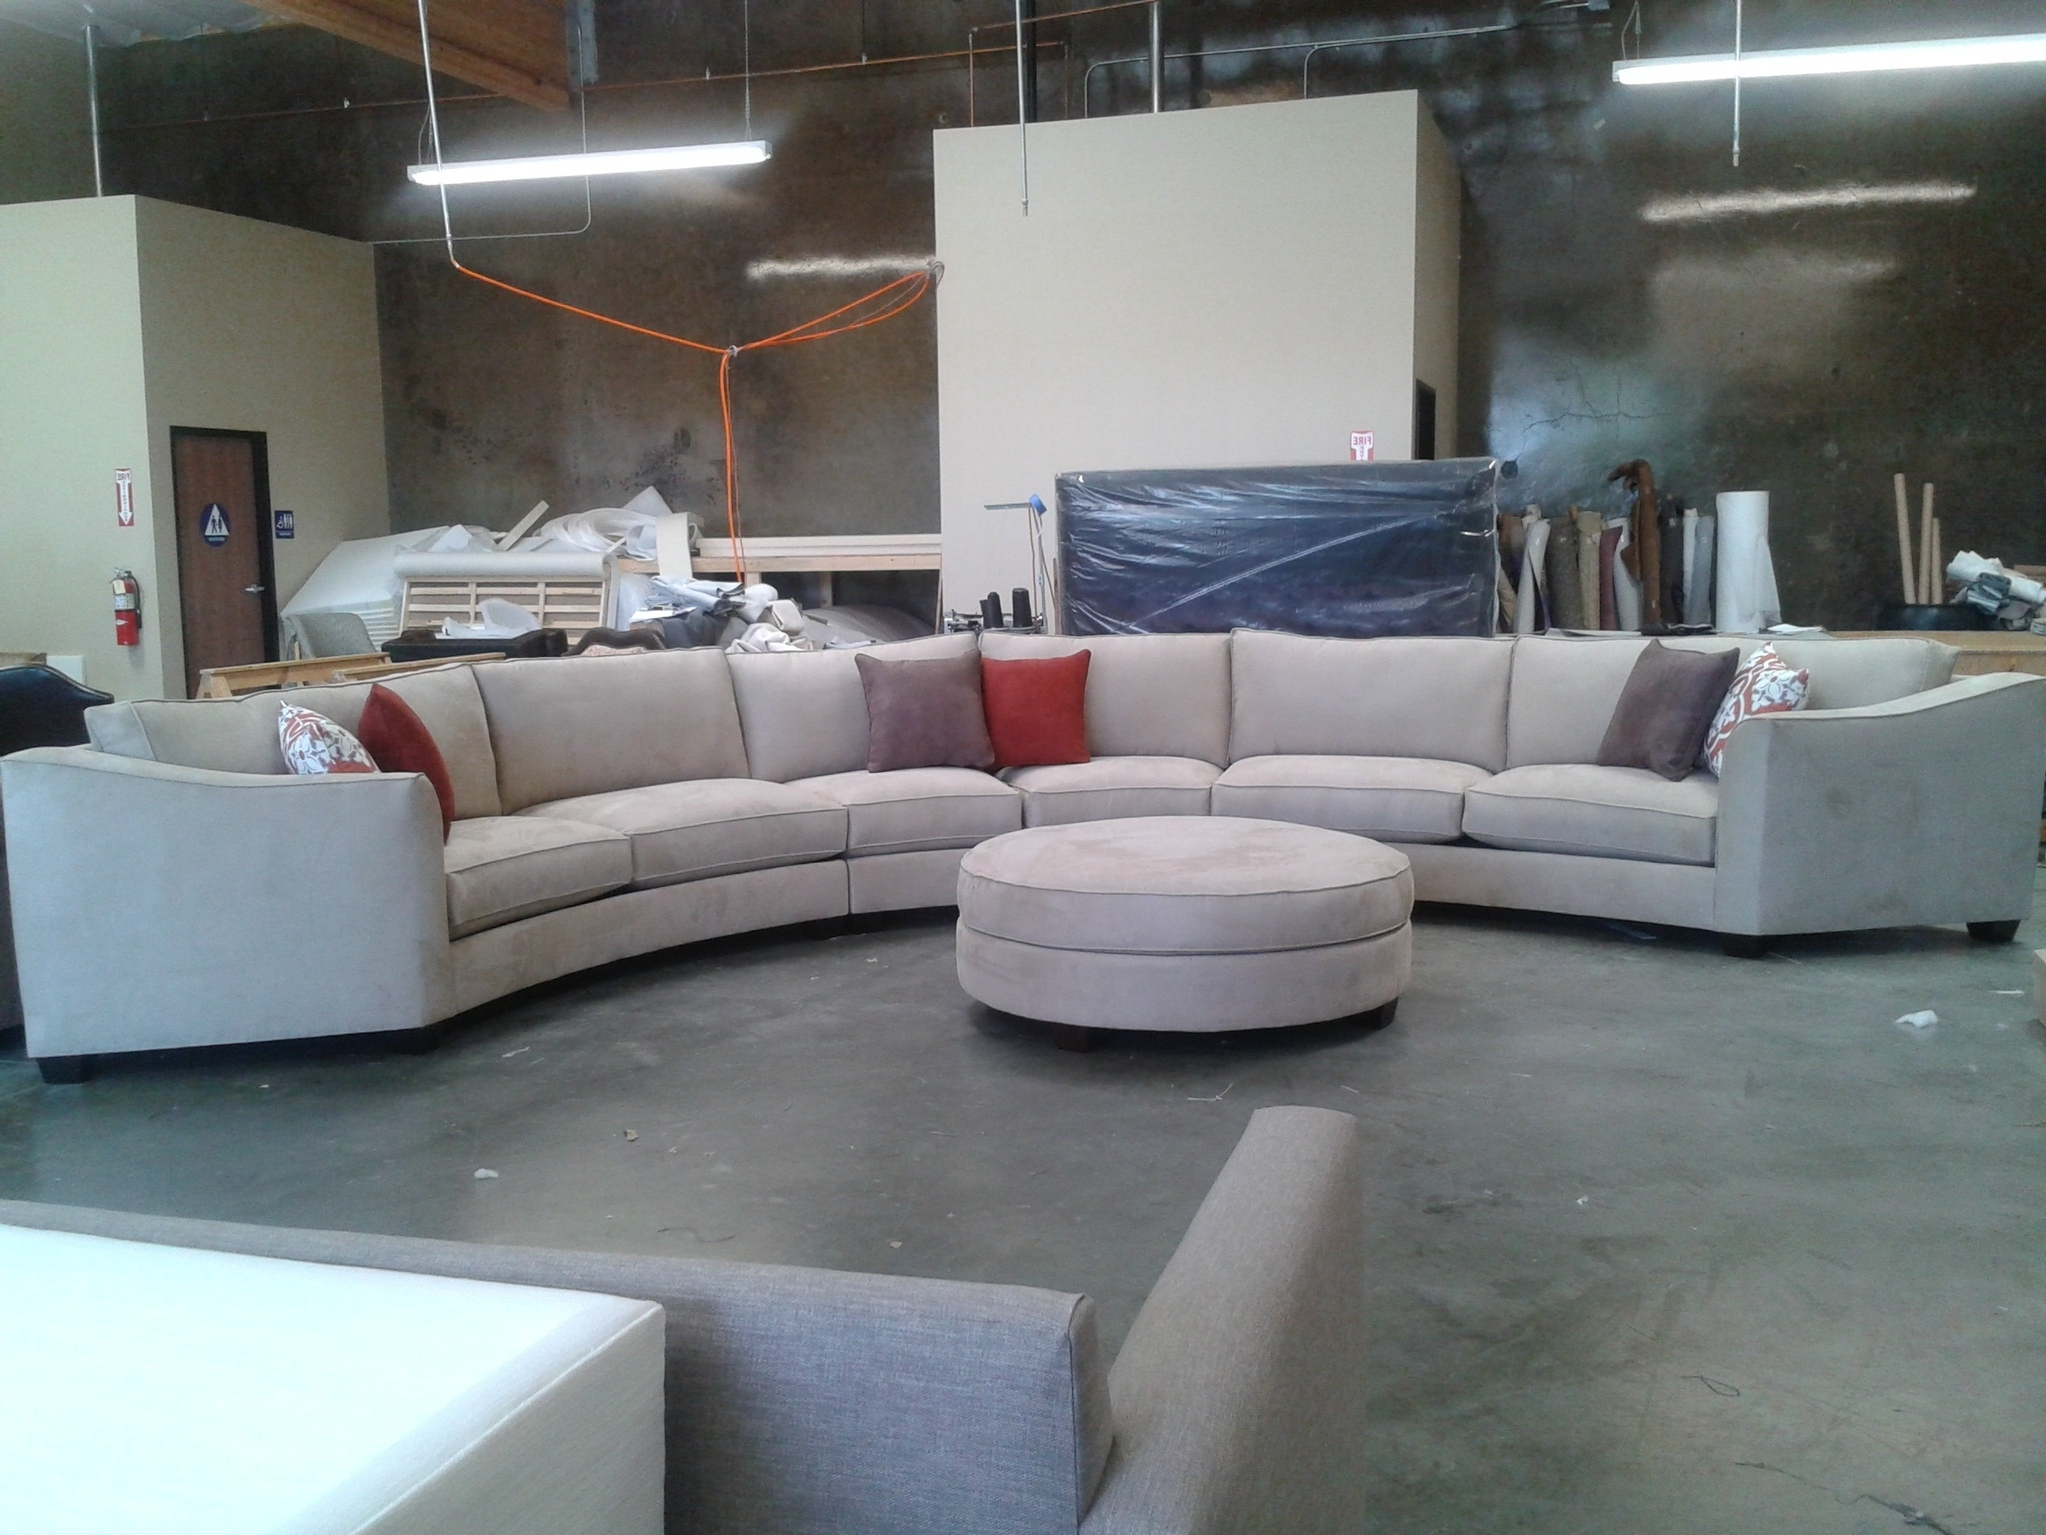 110X90 Sectional Sofas Regarding Preferred Furniture : Youth Recliner Large Sectional Sofas With Ottoman (Gallery 5 of 15)